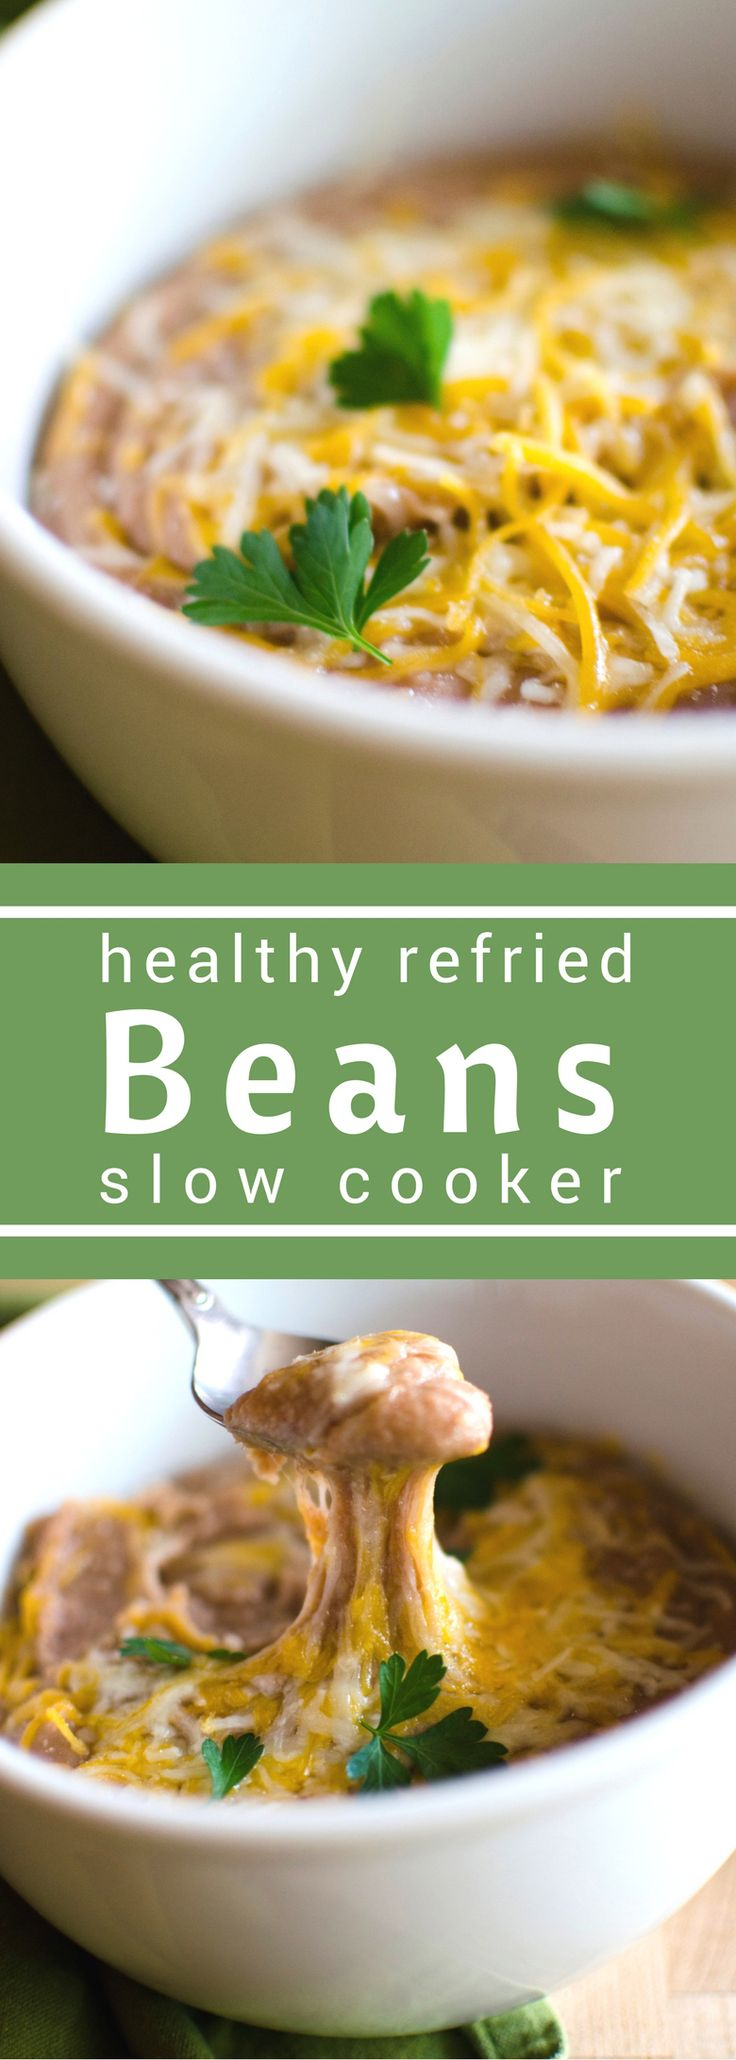 Slow Cooker Healthy Refried Beans are a must for any Cinco de Mayo celebrations. #SundaySupper. only a few simply ingredients makes one healthy side! It's the perfect side for Taco Tuesday!